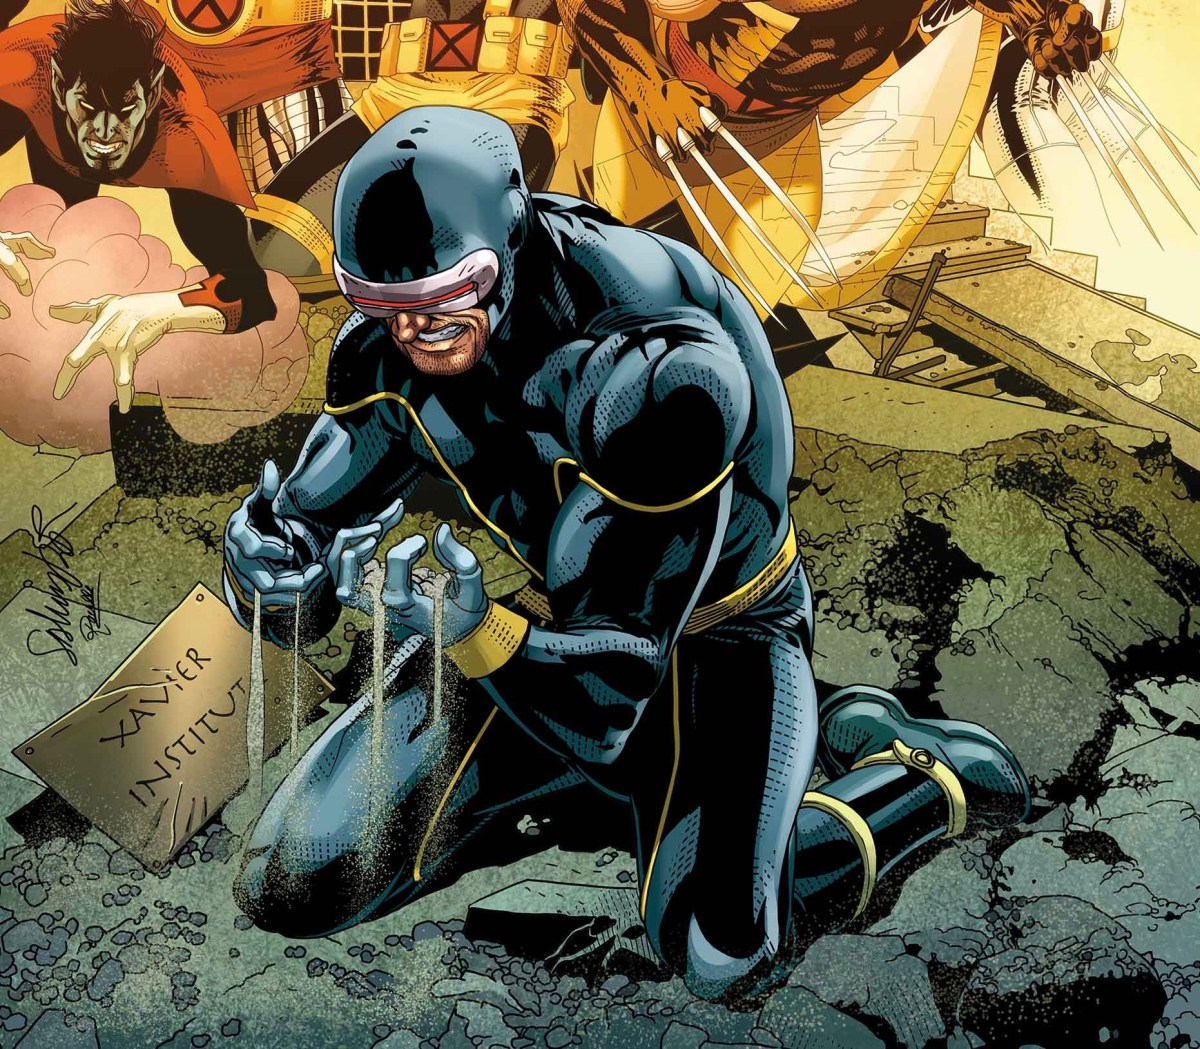 'About redemption and second chances.' Writer Matthew Rosenberg teases Cyclops' return